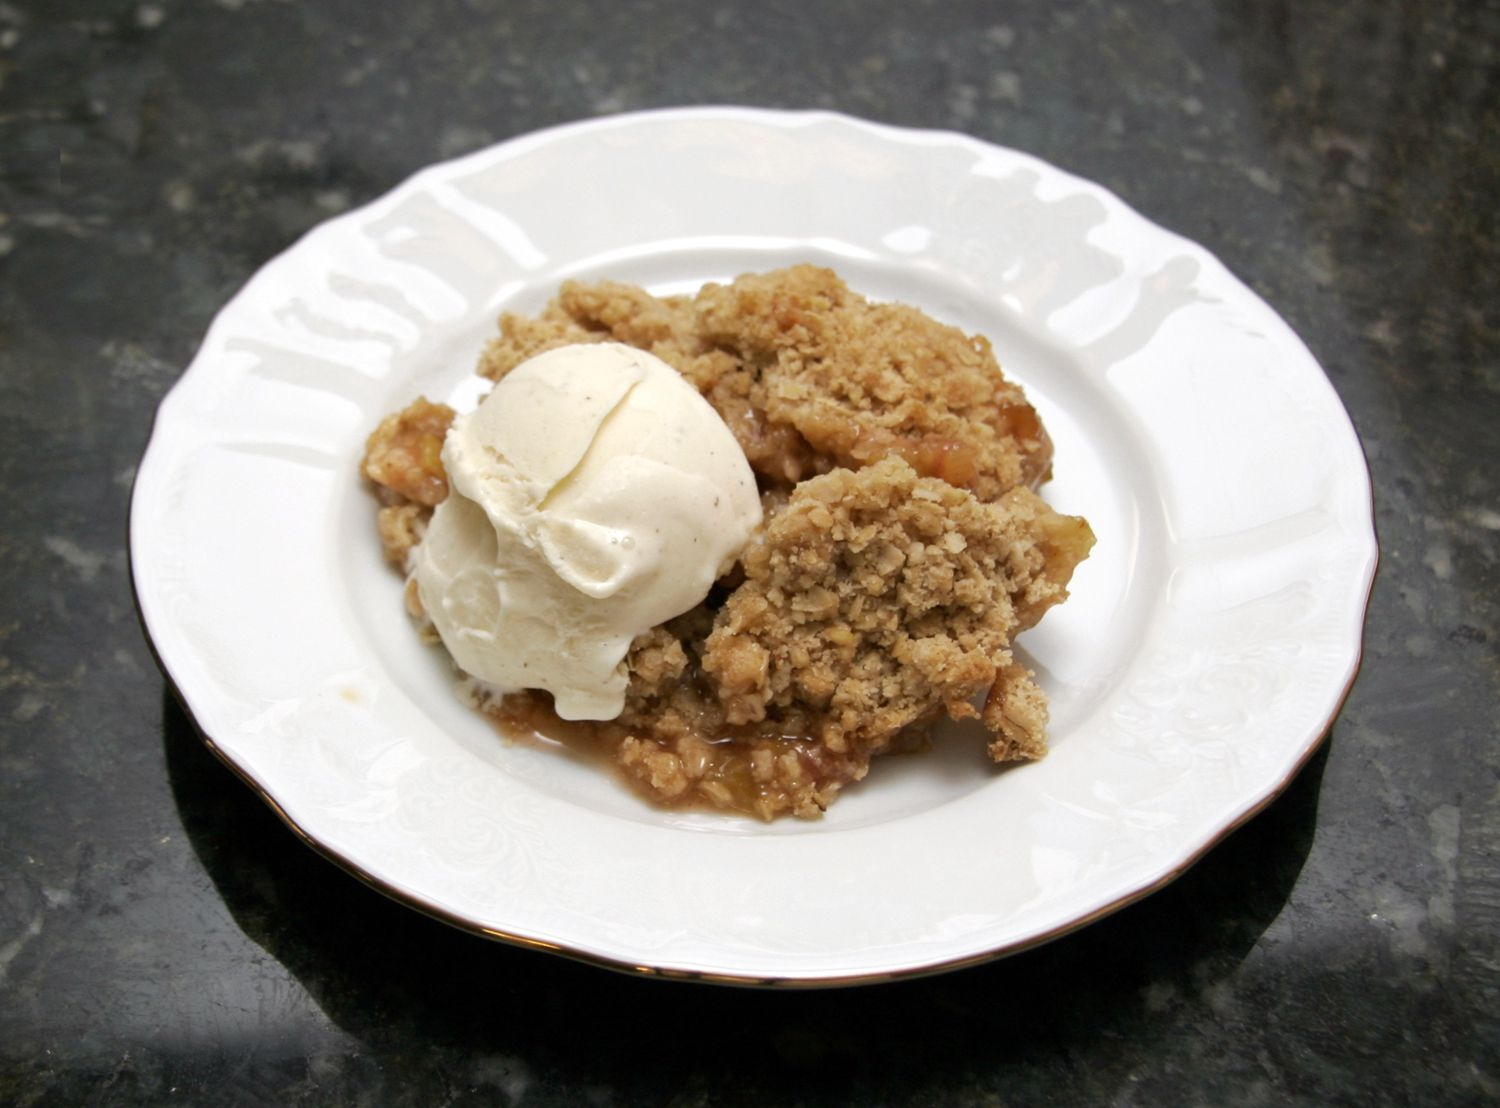 Rhubarb Crisp With Crunchy Oat Topping